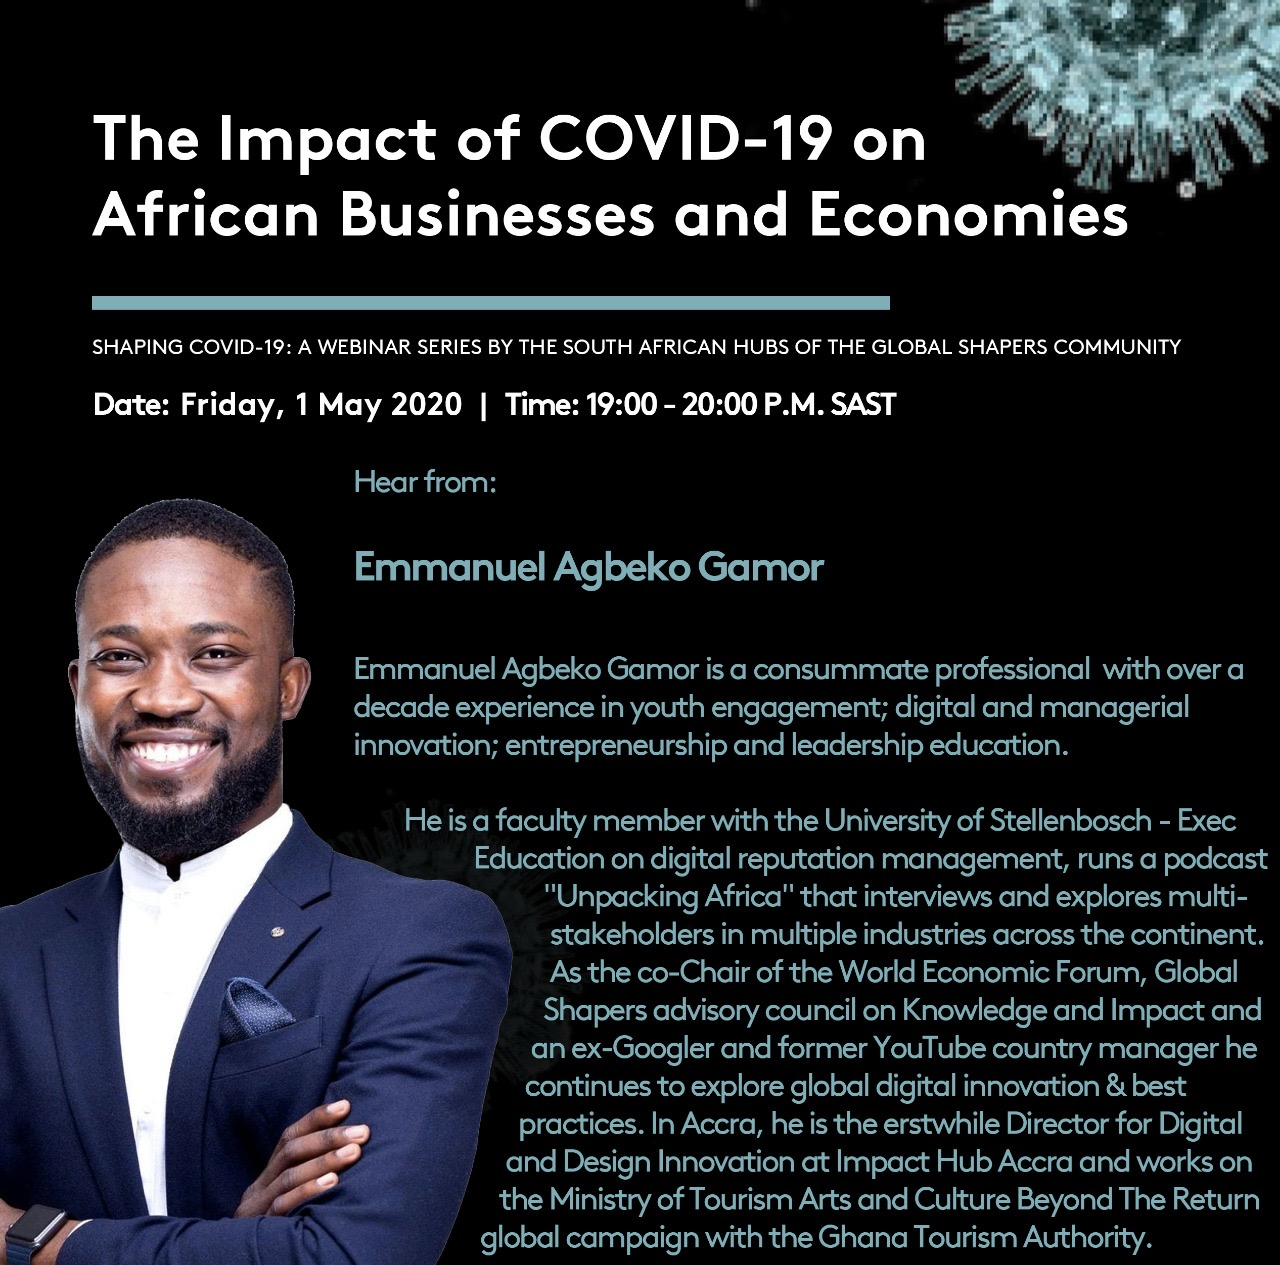 The Impact pf Covid19 on African Businesses - Emmanuel Gamor